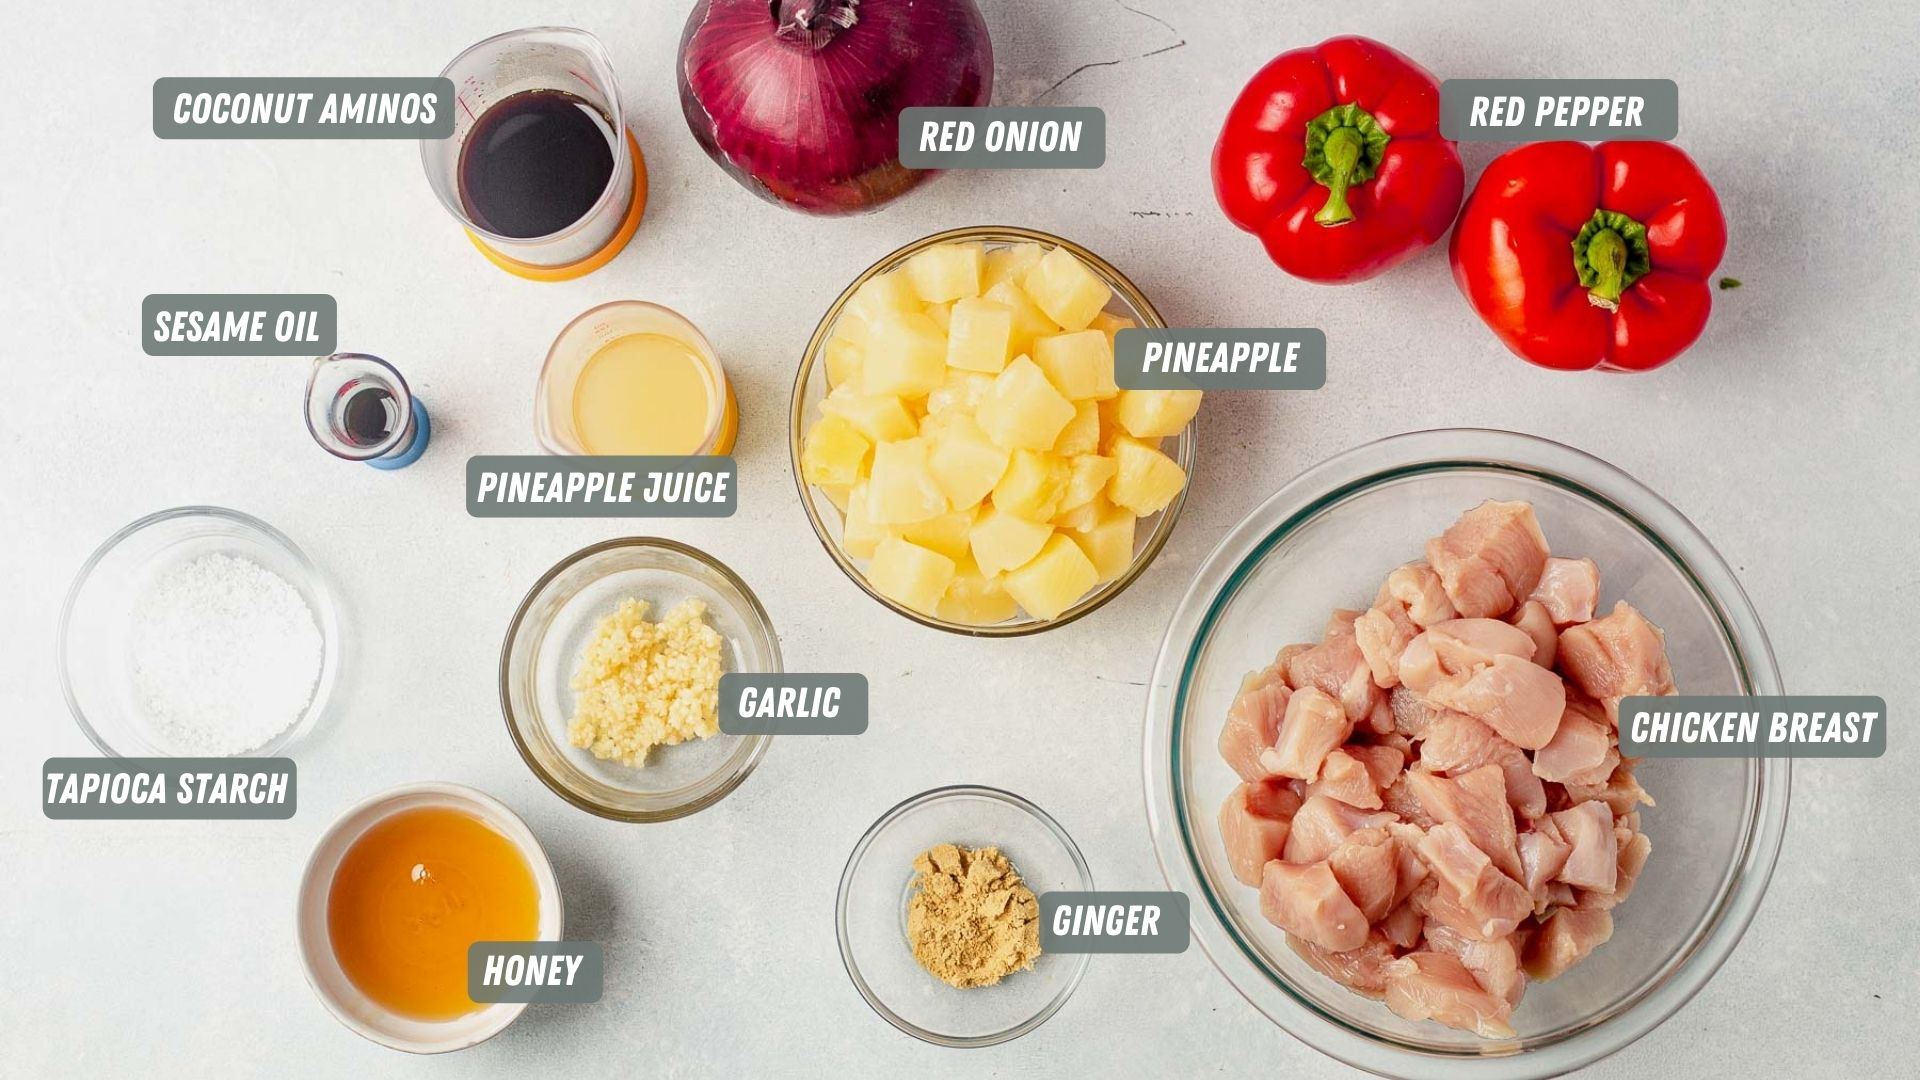 ingredients for hawaiian chicken kabobs measured out on the table